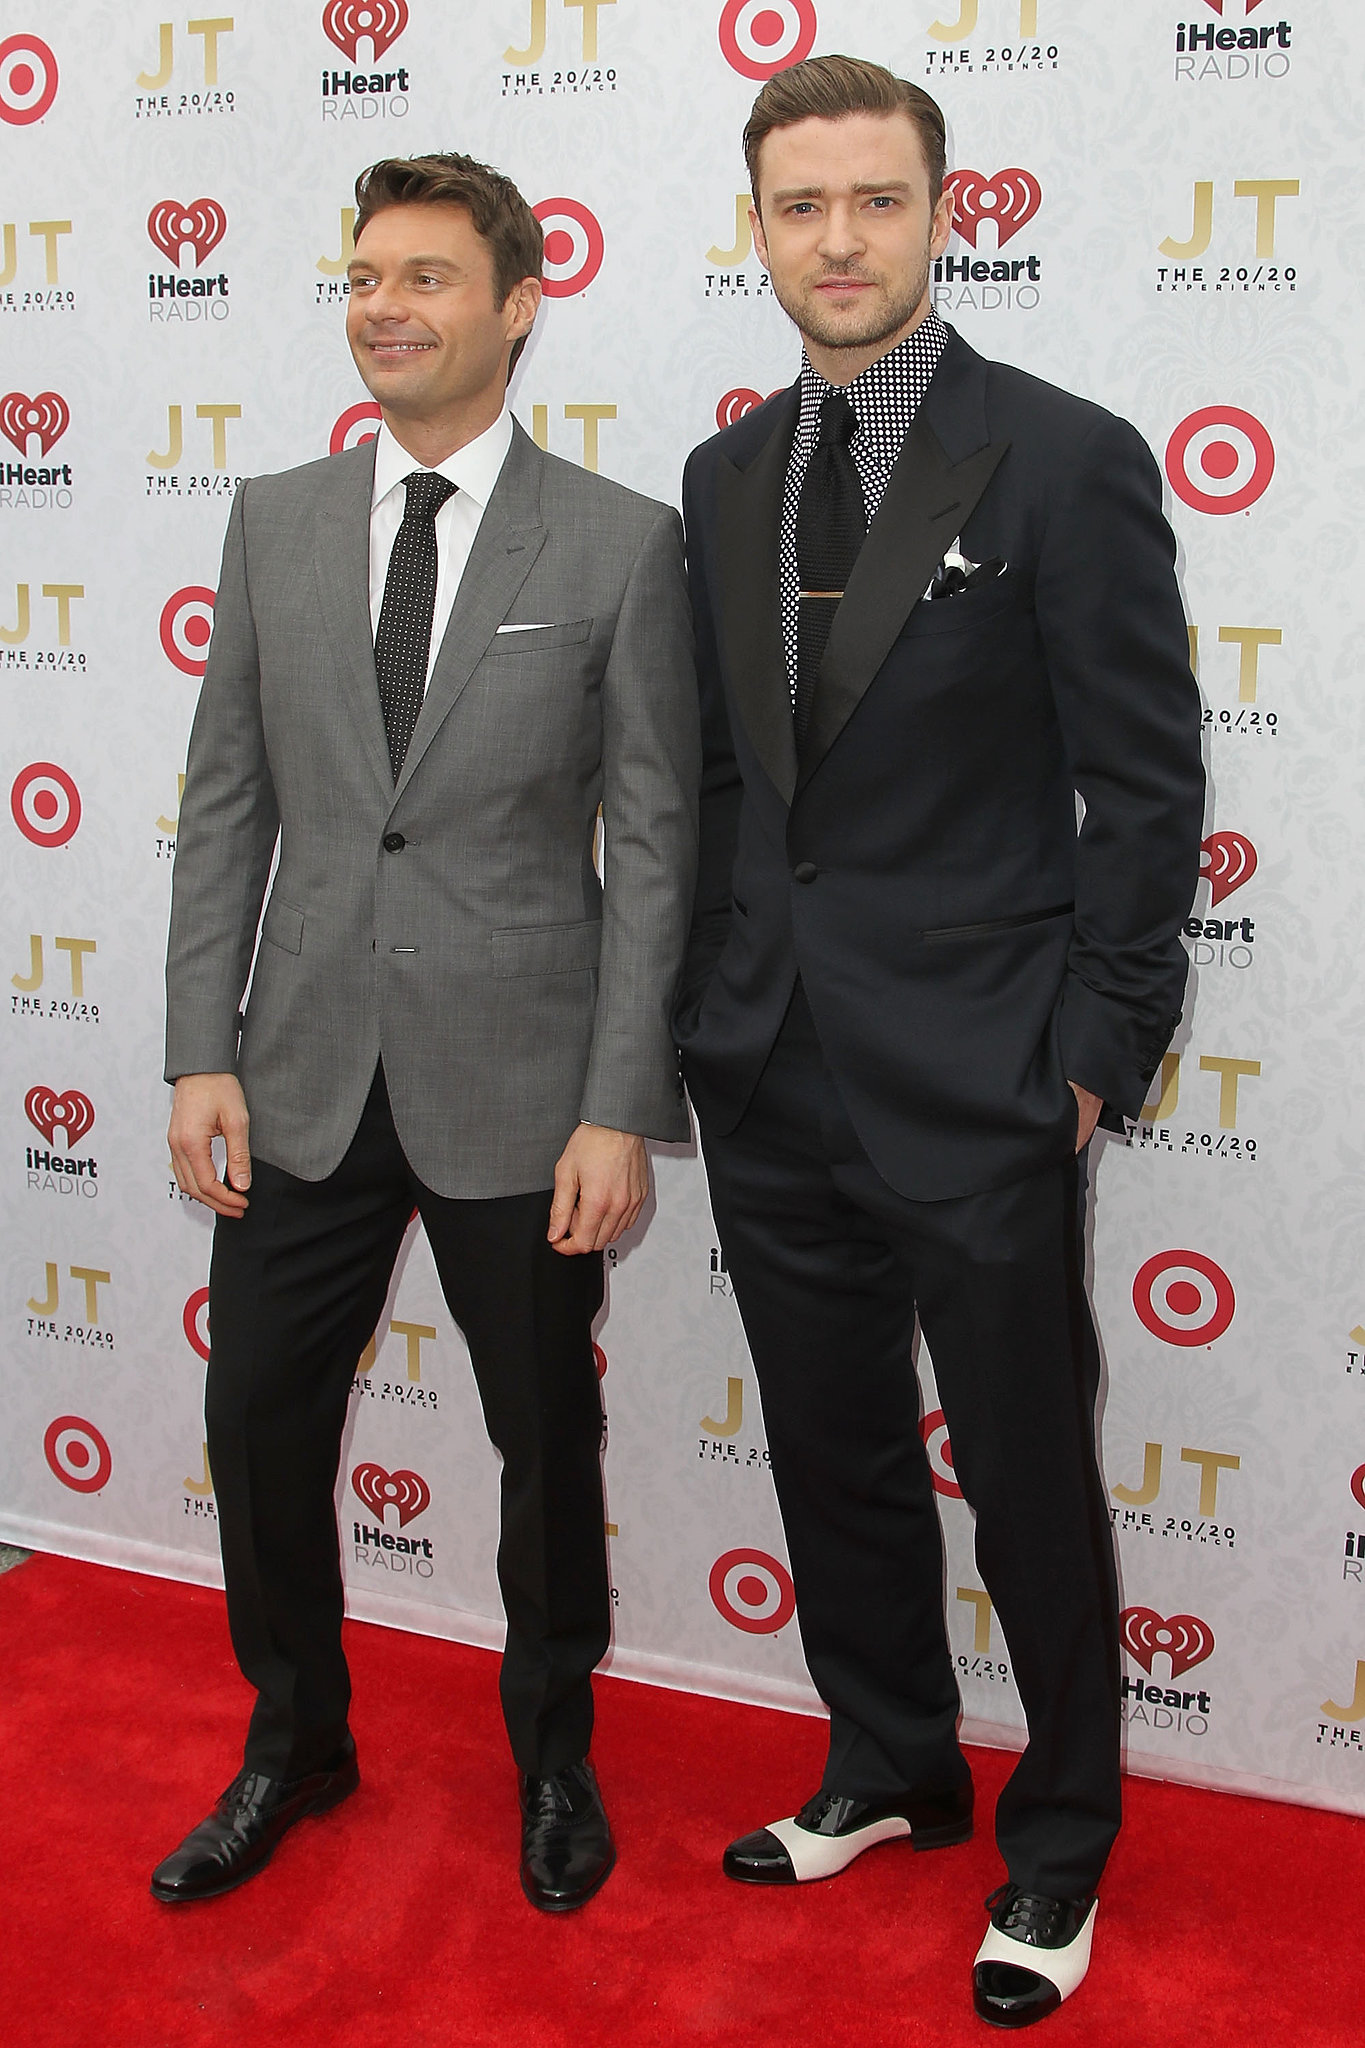 From Ryan Seacrest's playful tie to Justin's statement-making shirt, it's clear these guys were both on the polka-dot train at the iHeartRadio 20/20 album release in March 2013.